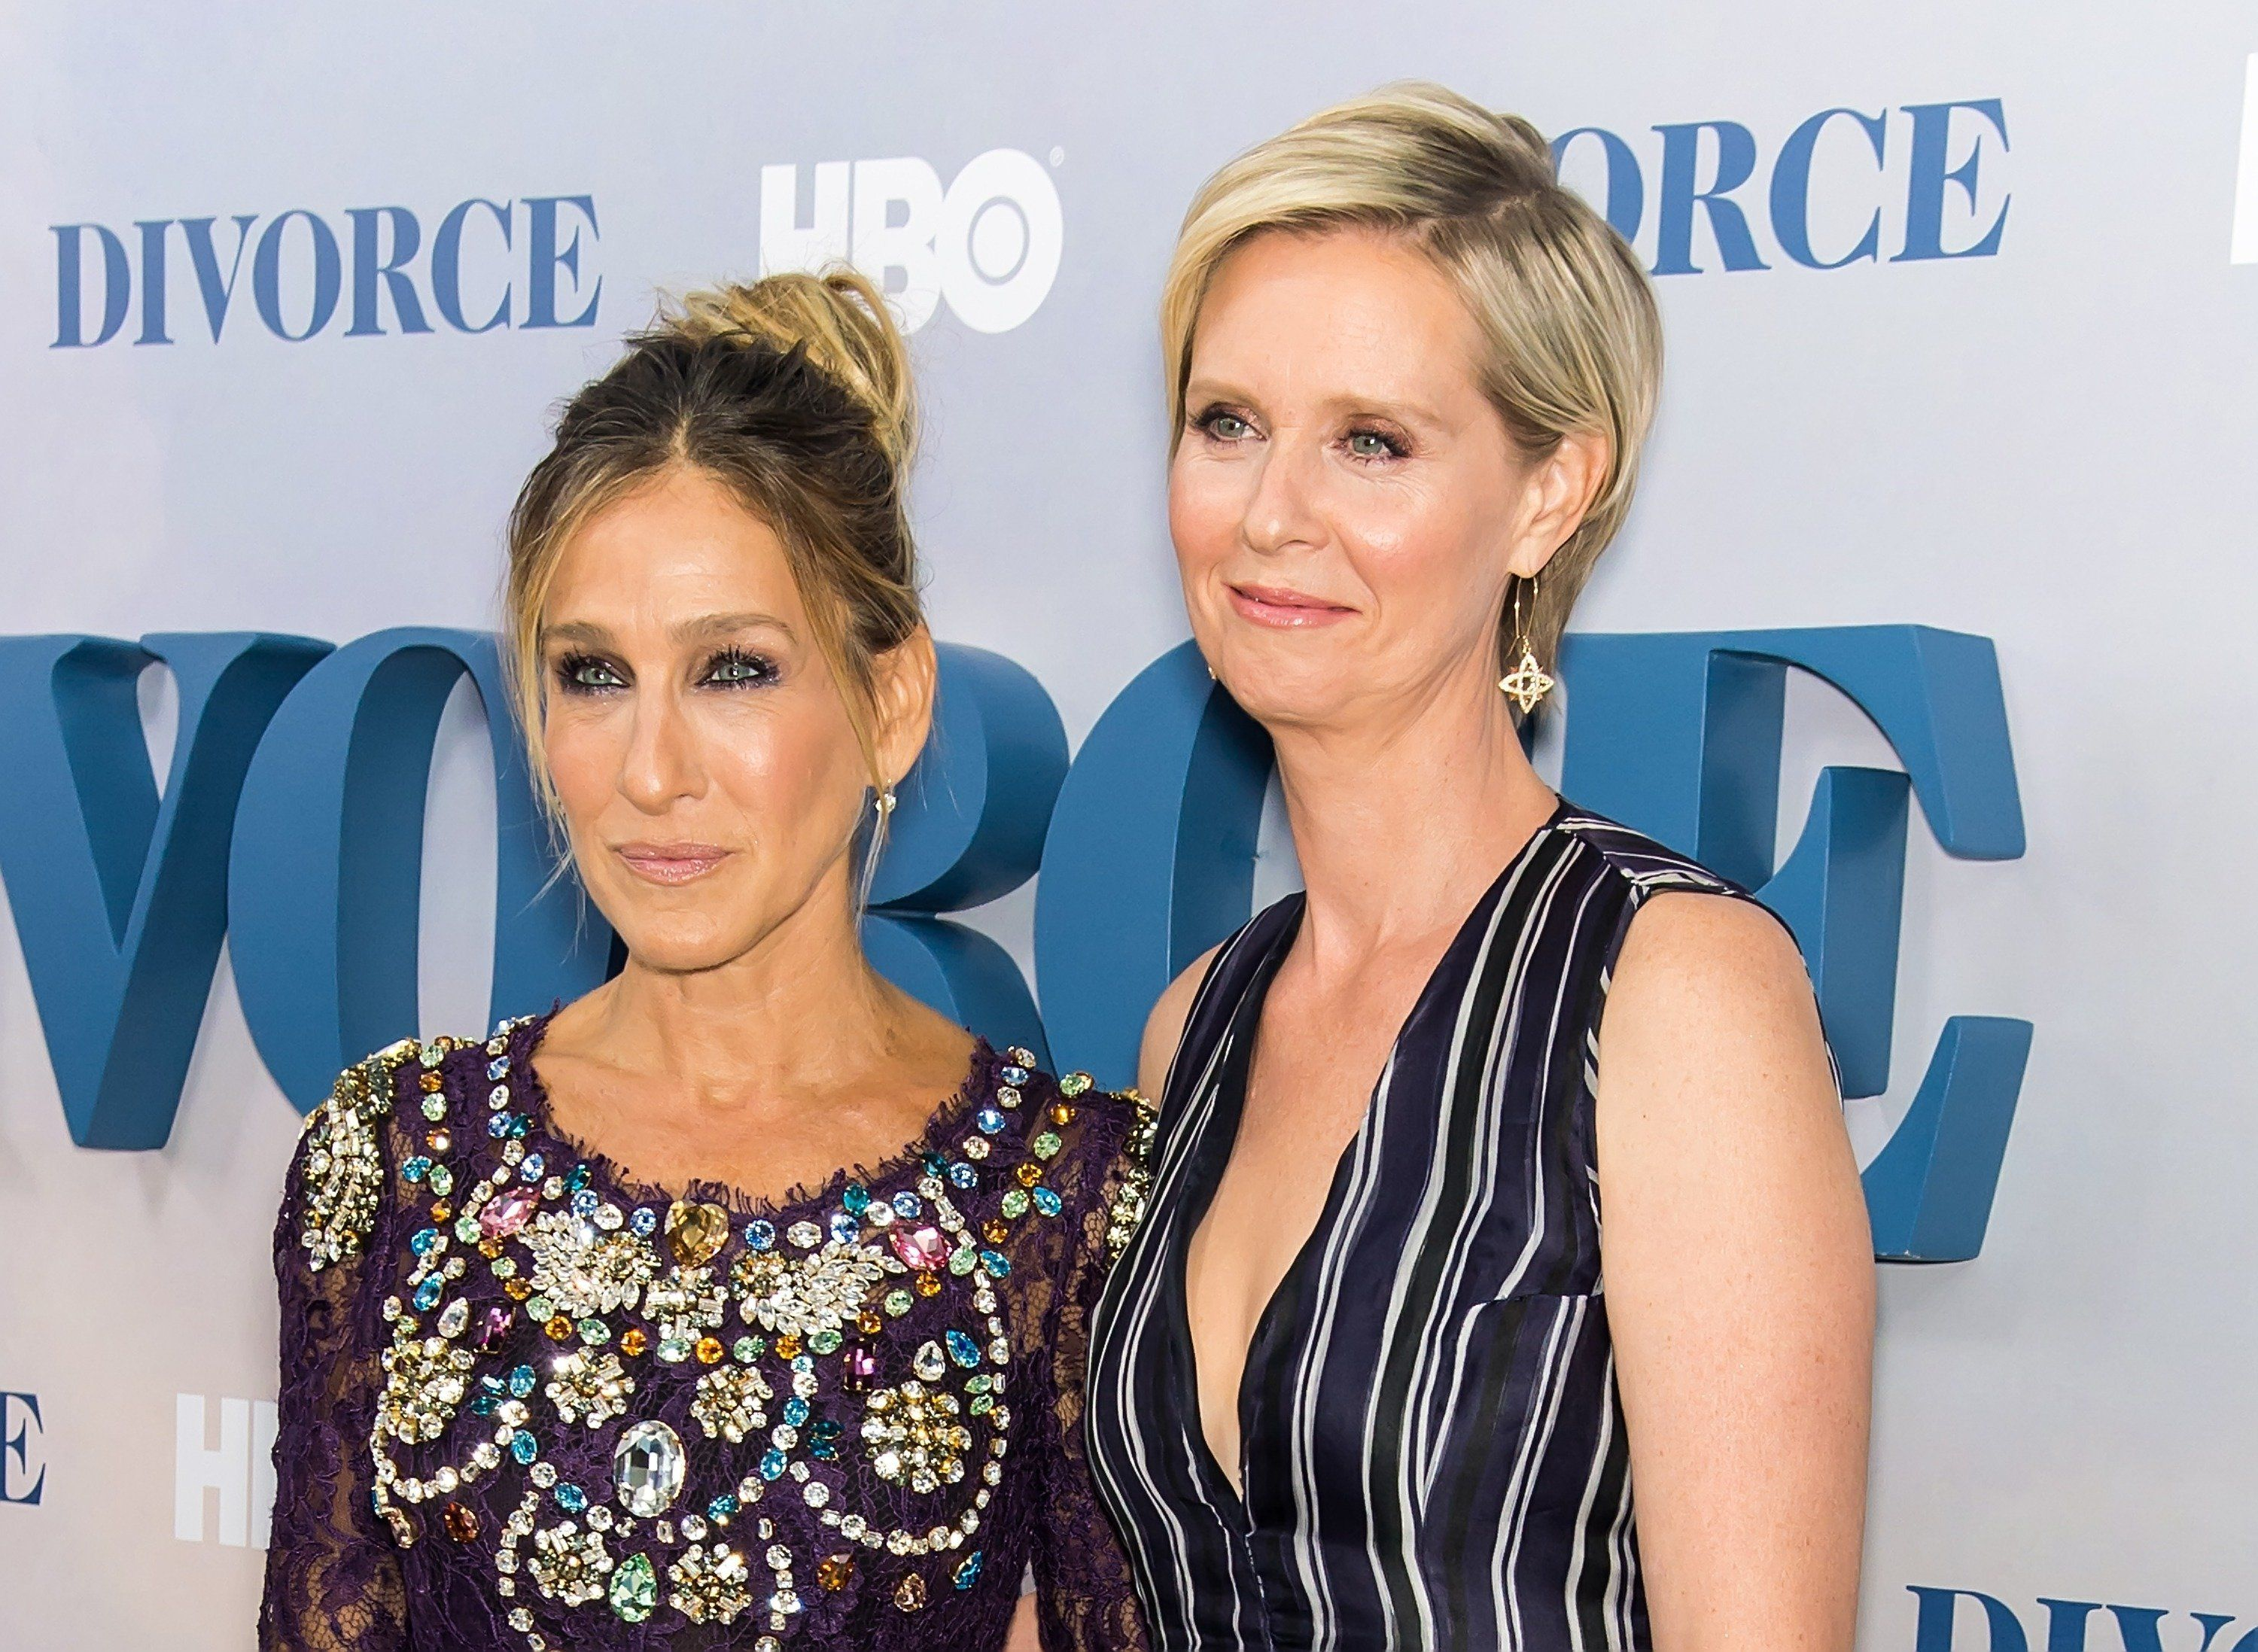 Sarah Jessica Parker Breaks Silence on Cynthia Nixon's NY Governor Bid